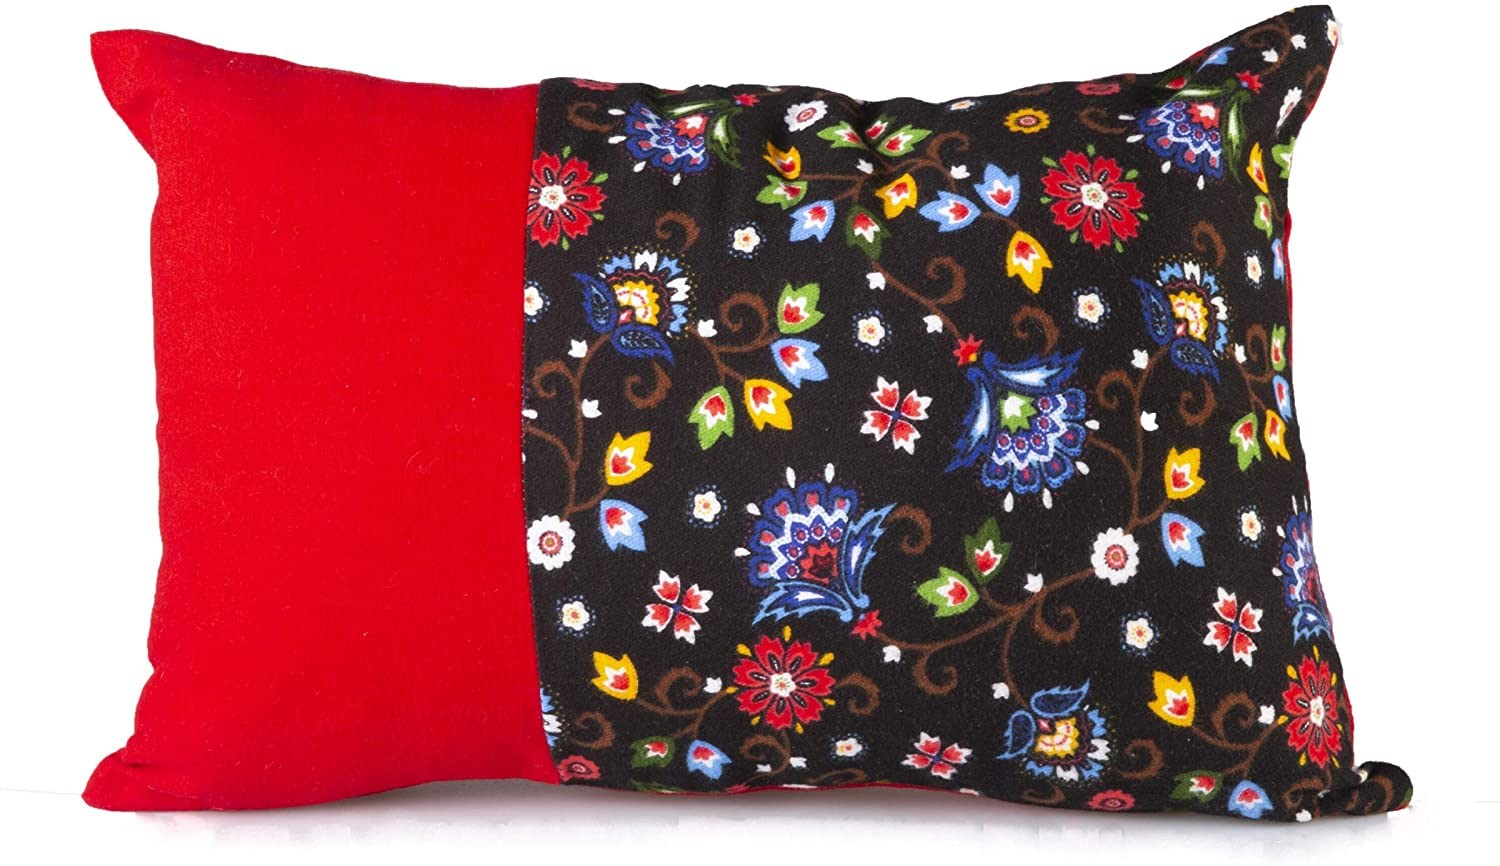 21 inch pillow covers online